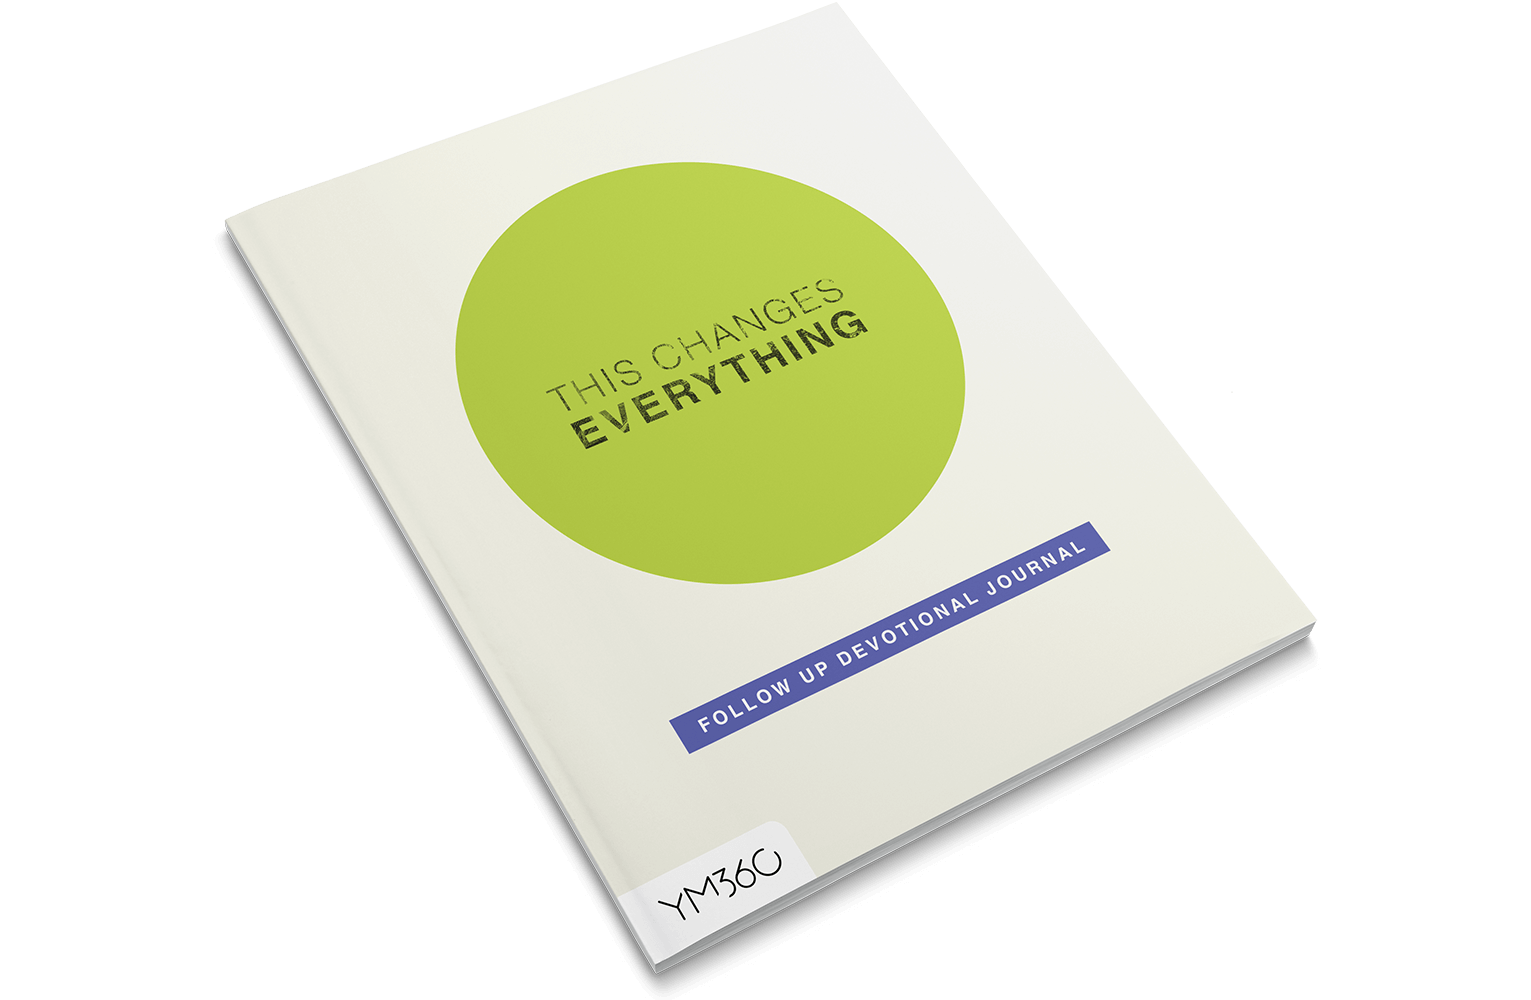 This Changes Everything Follow-Up Journal